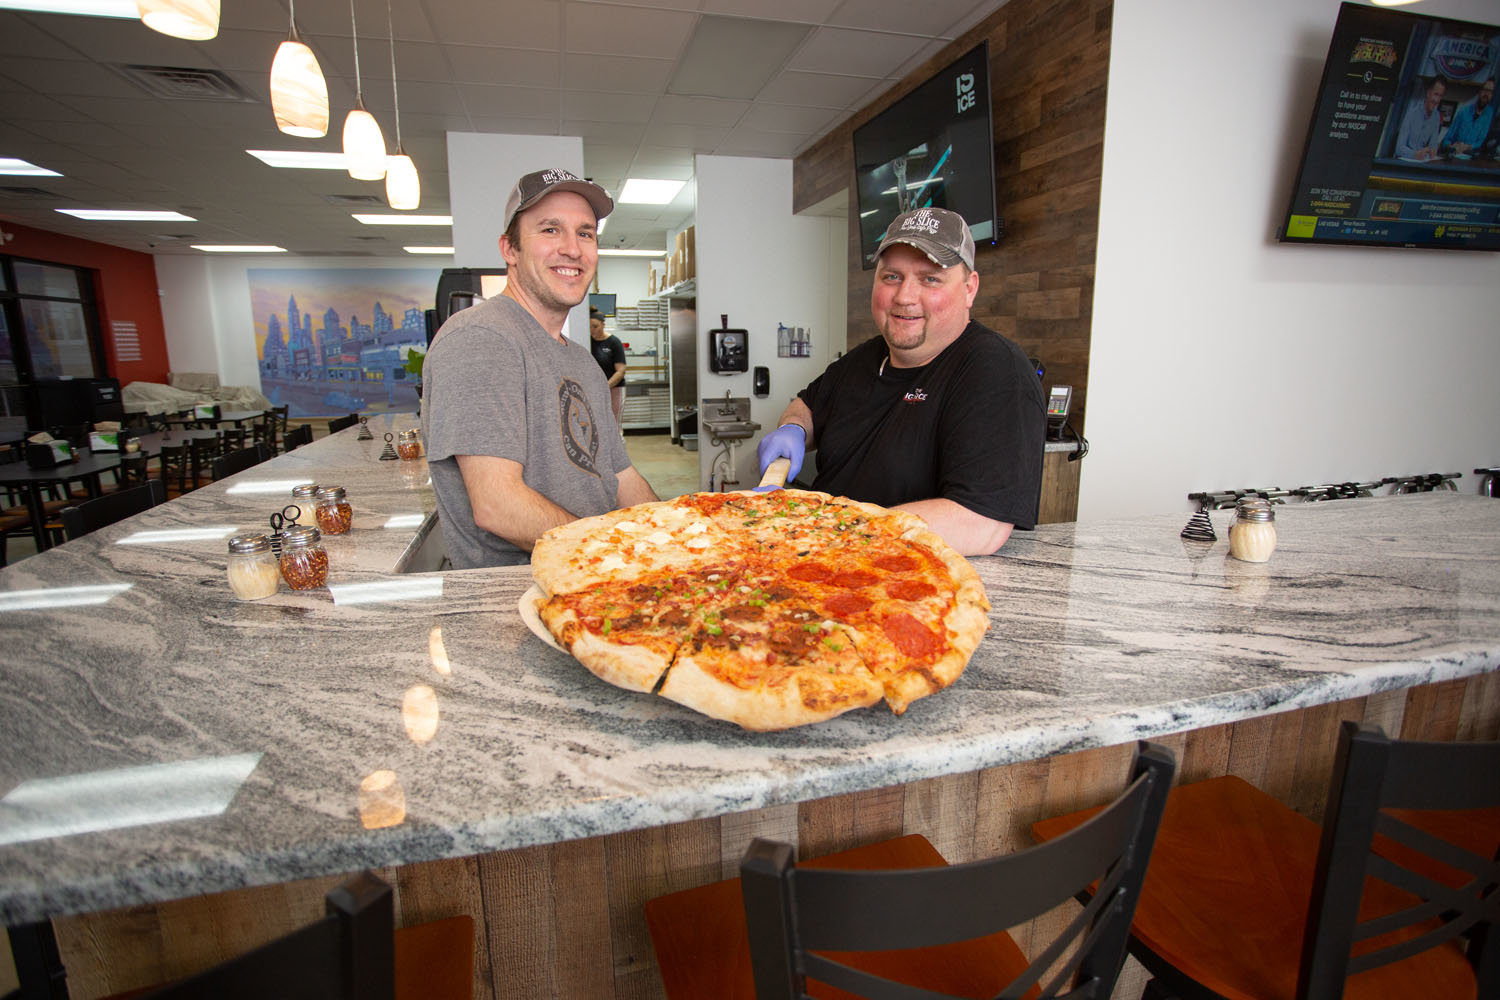 FOOD FRANCHISE: The Big Slice owner Levi Grant, left, is working to franchise the concept, starting with Justin Kennedy as a partner.